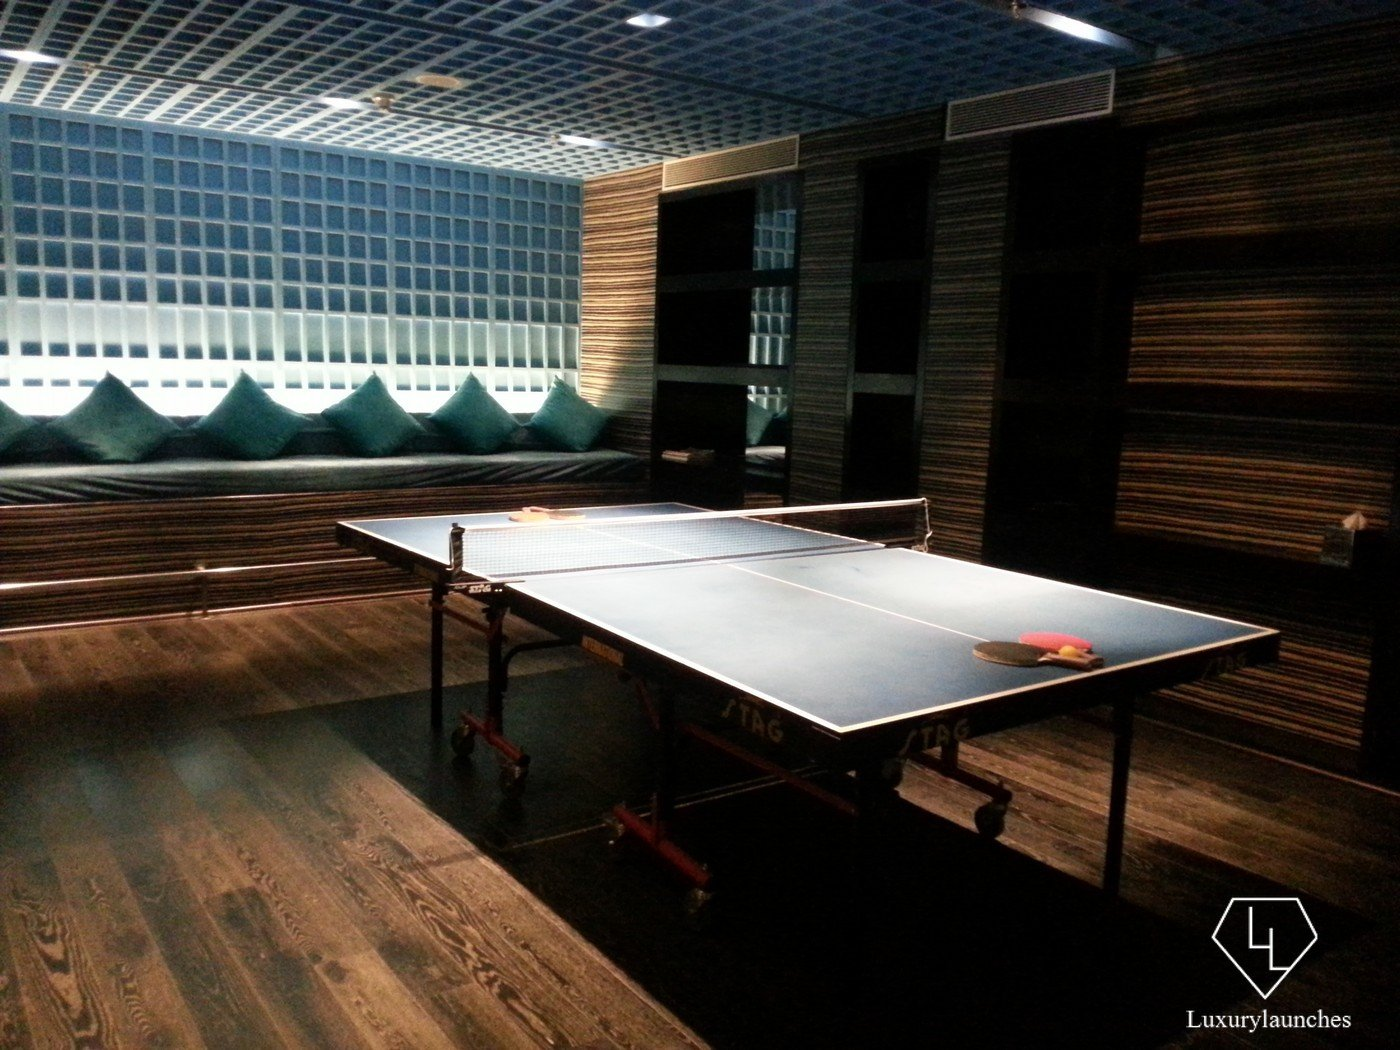 Table Tennis at the Entertainment Centre